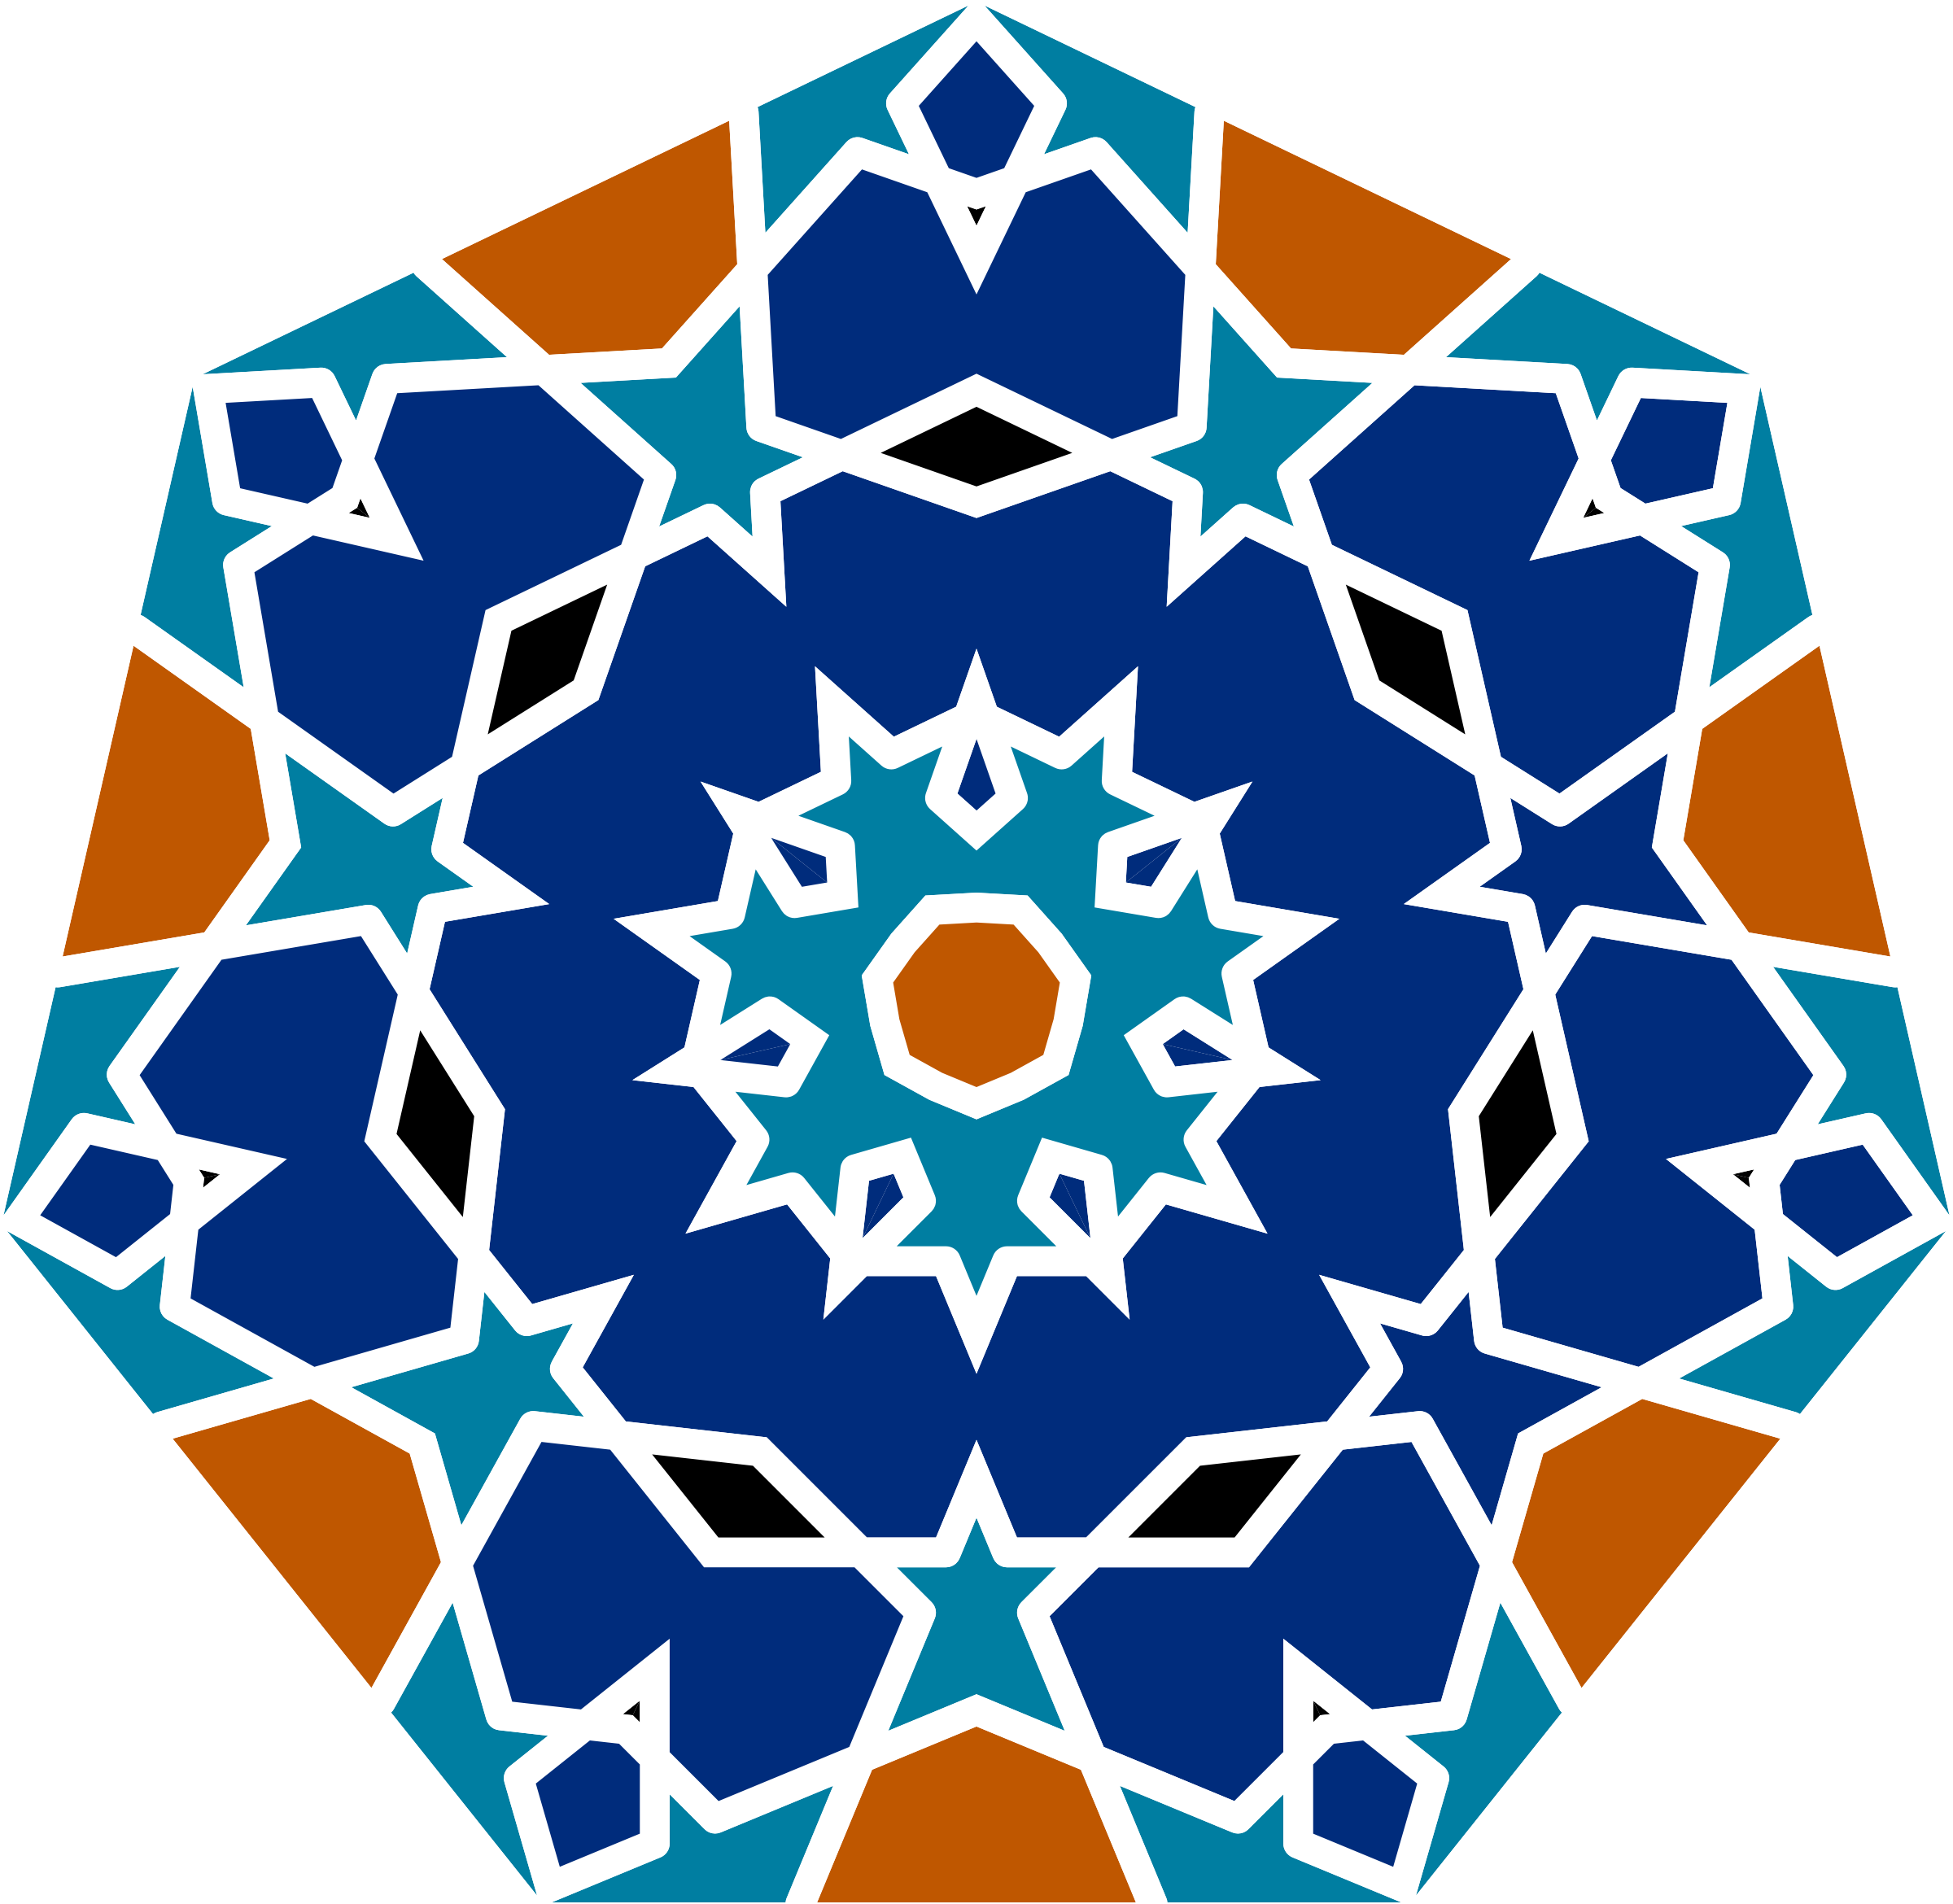 Tile drawing islamic. Geometric by gdj inspired